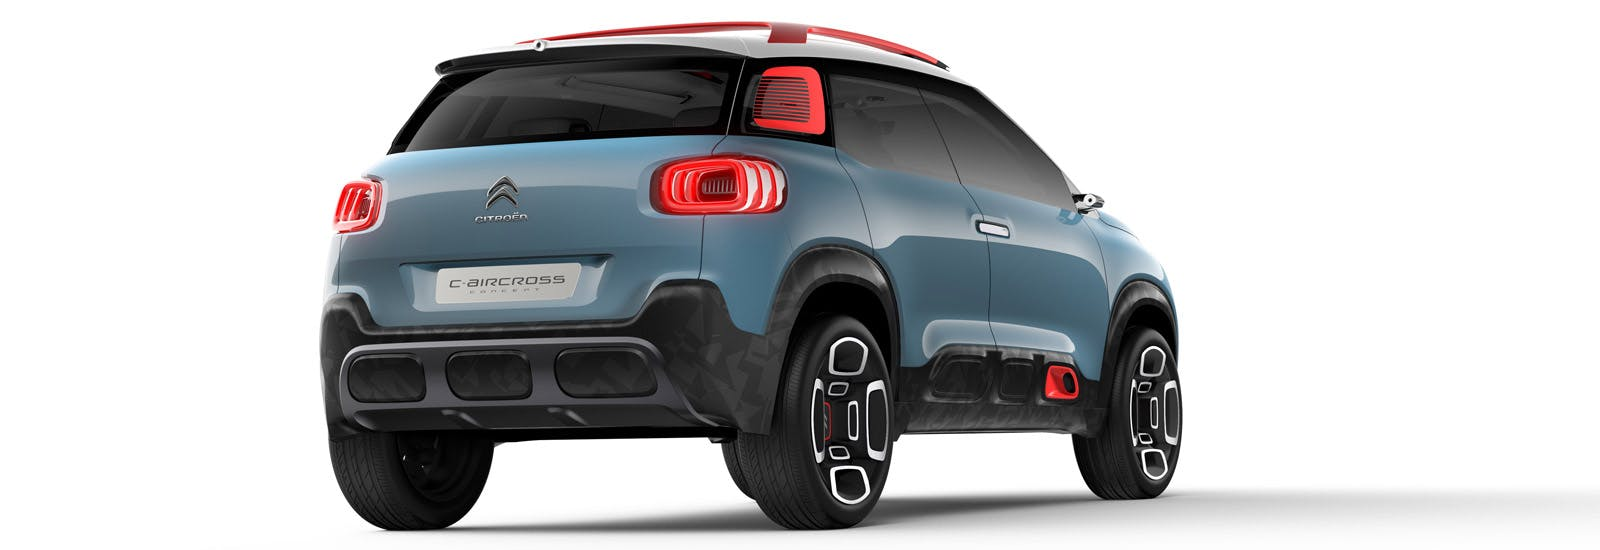 citroen c aircross price specs and release date carwow. Black Bedroom Furniture Sets. Home Design Ideas